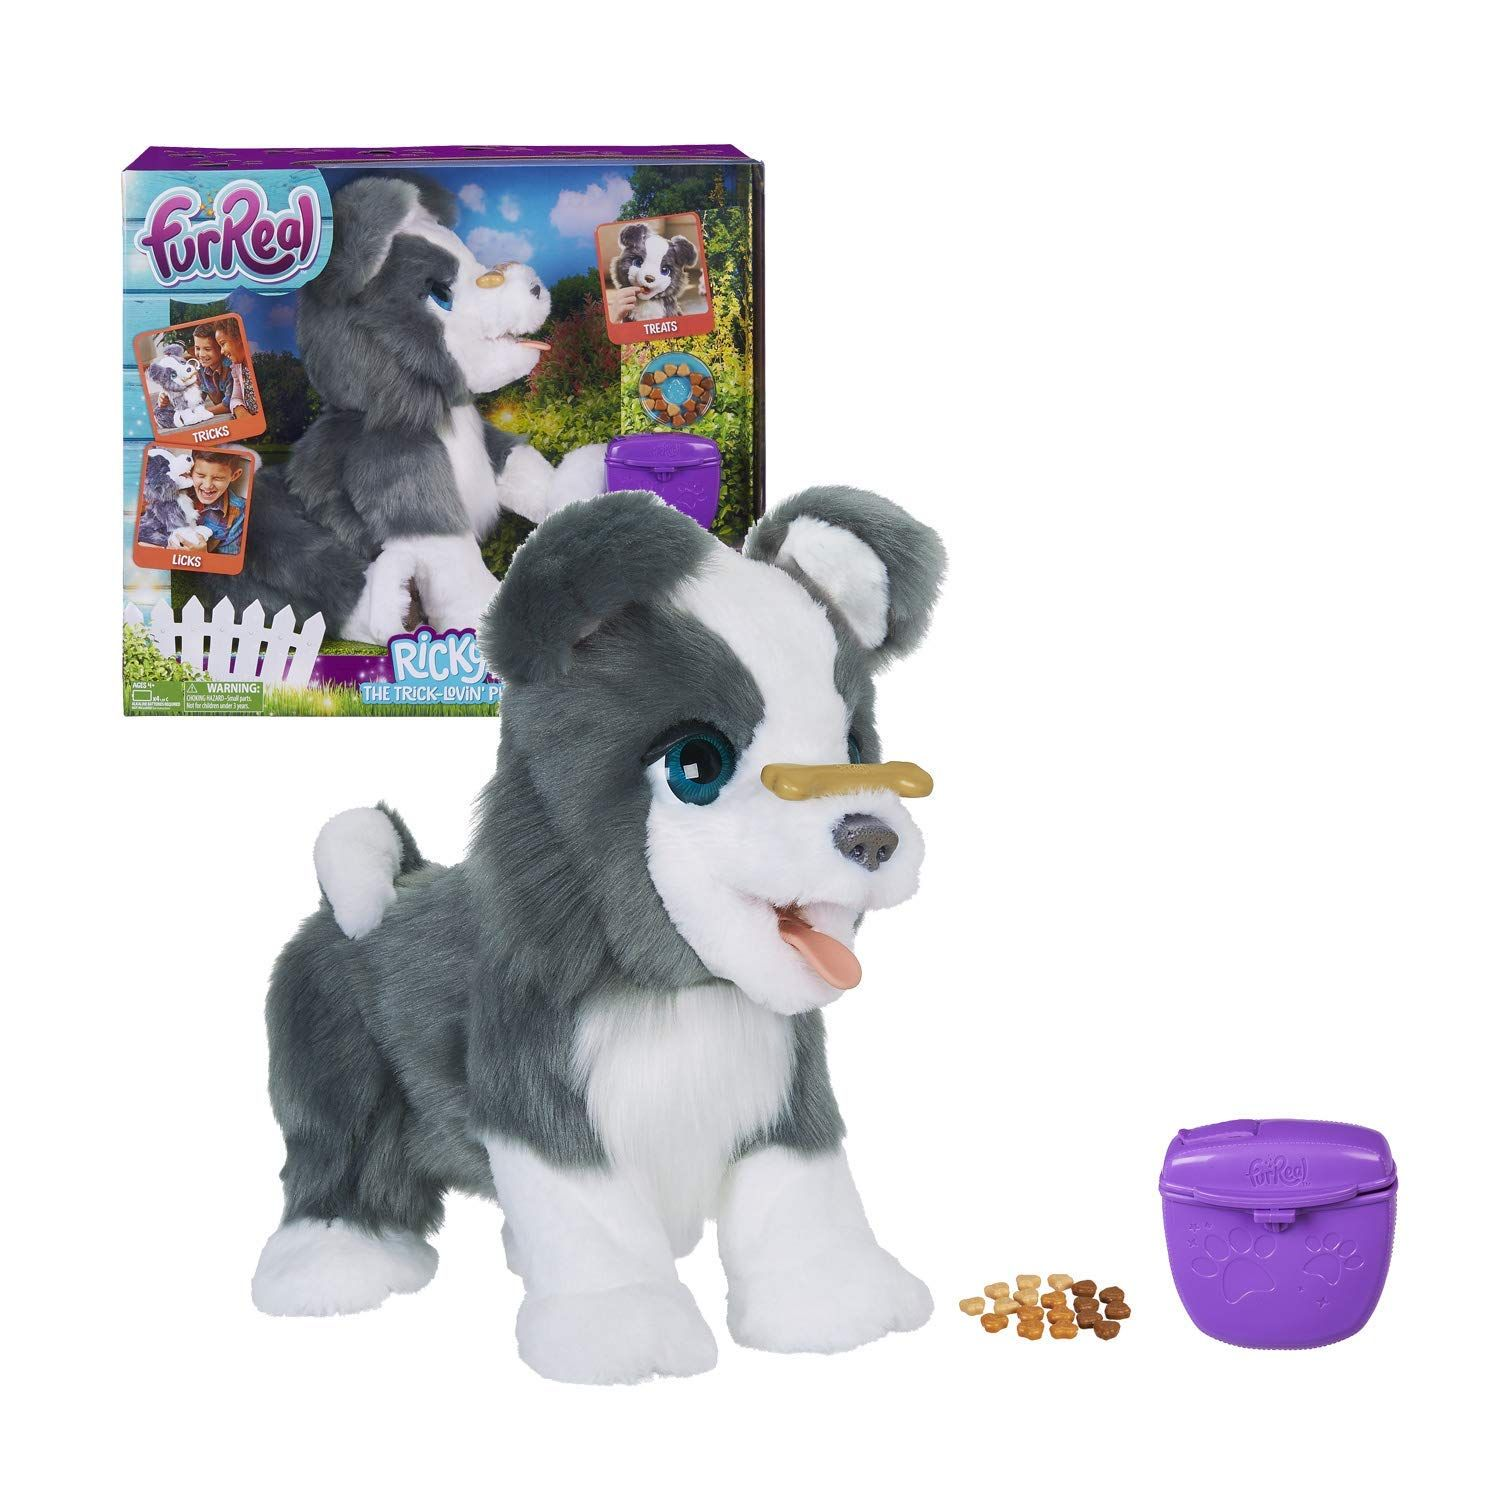 Go Couponing Now Amazon Fur Real Deal In 2020 Fur Real Friends Little Live Pets Electronic Toys For Kids